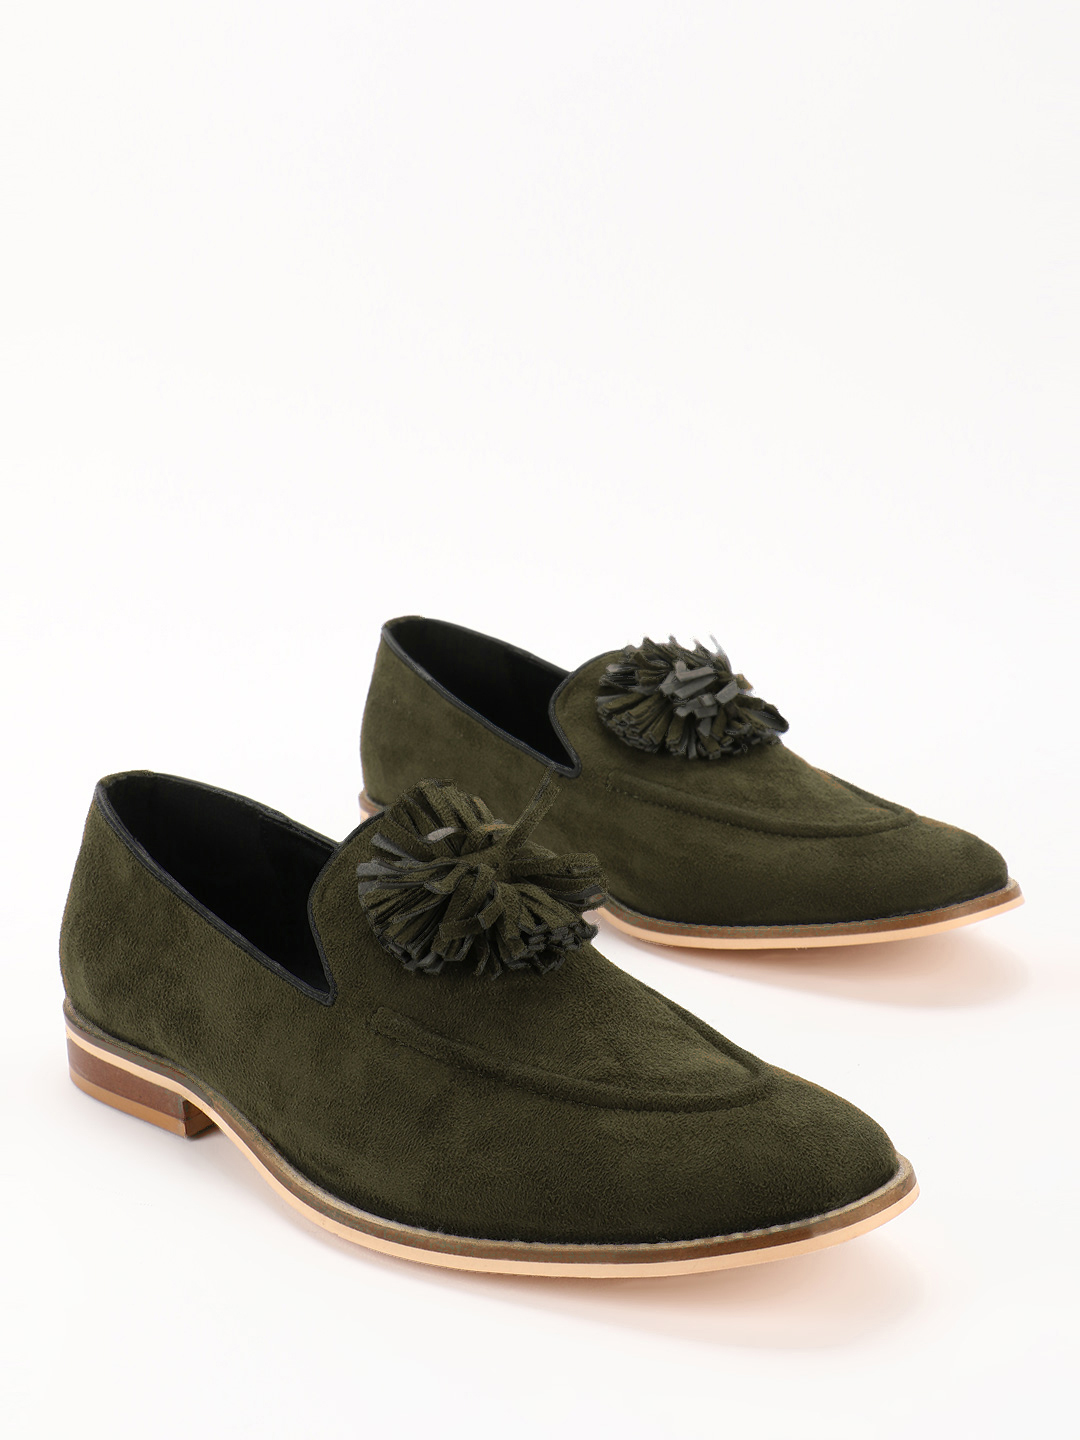 Griffin Green Fringed Flower Suede Loafers 1